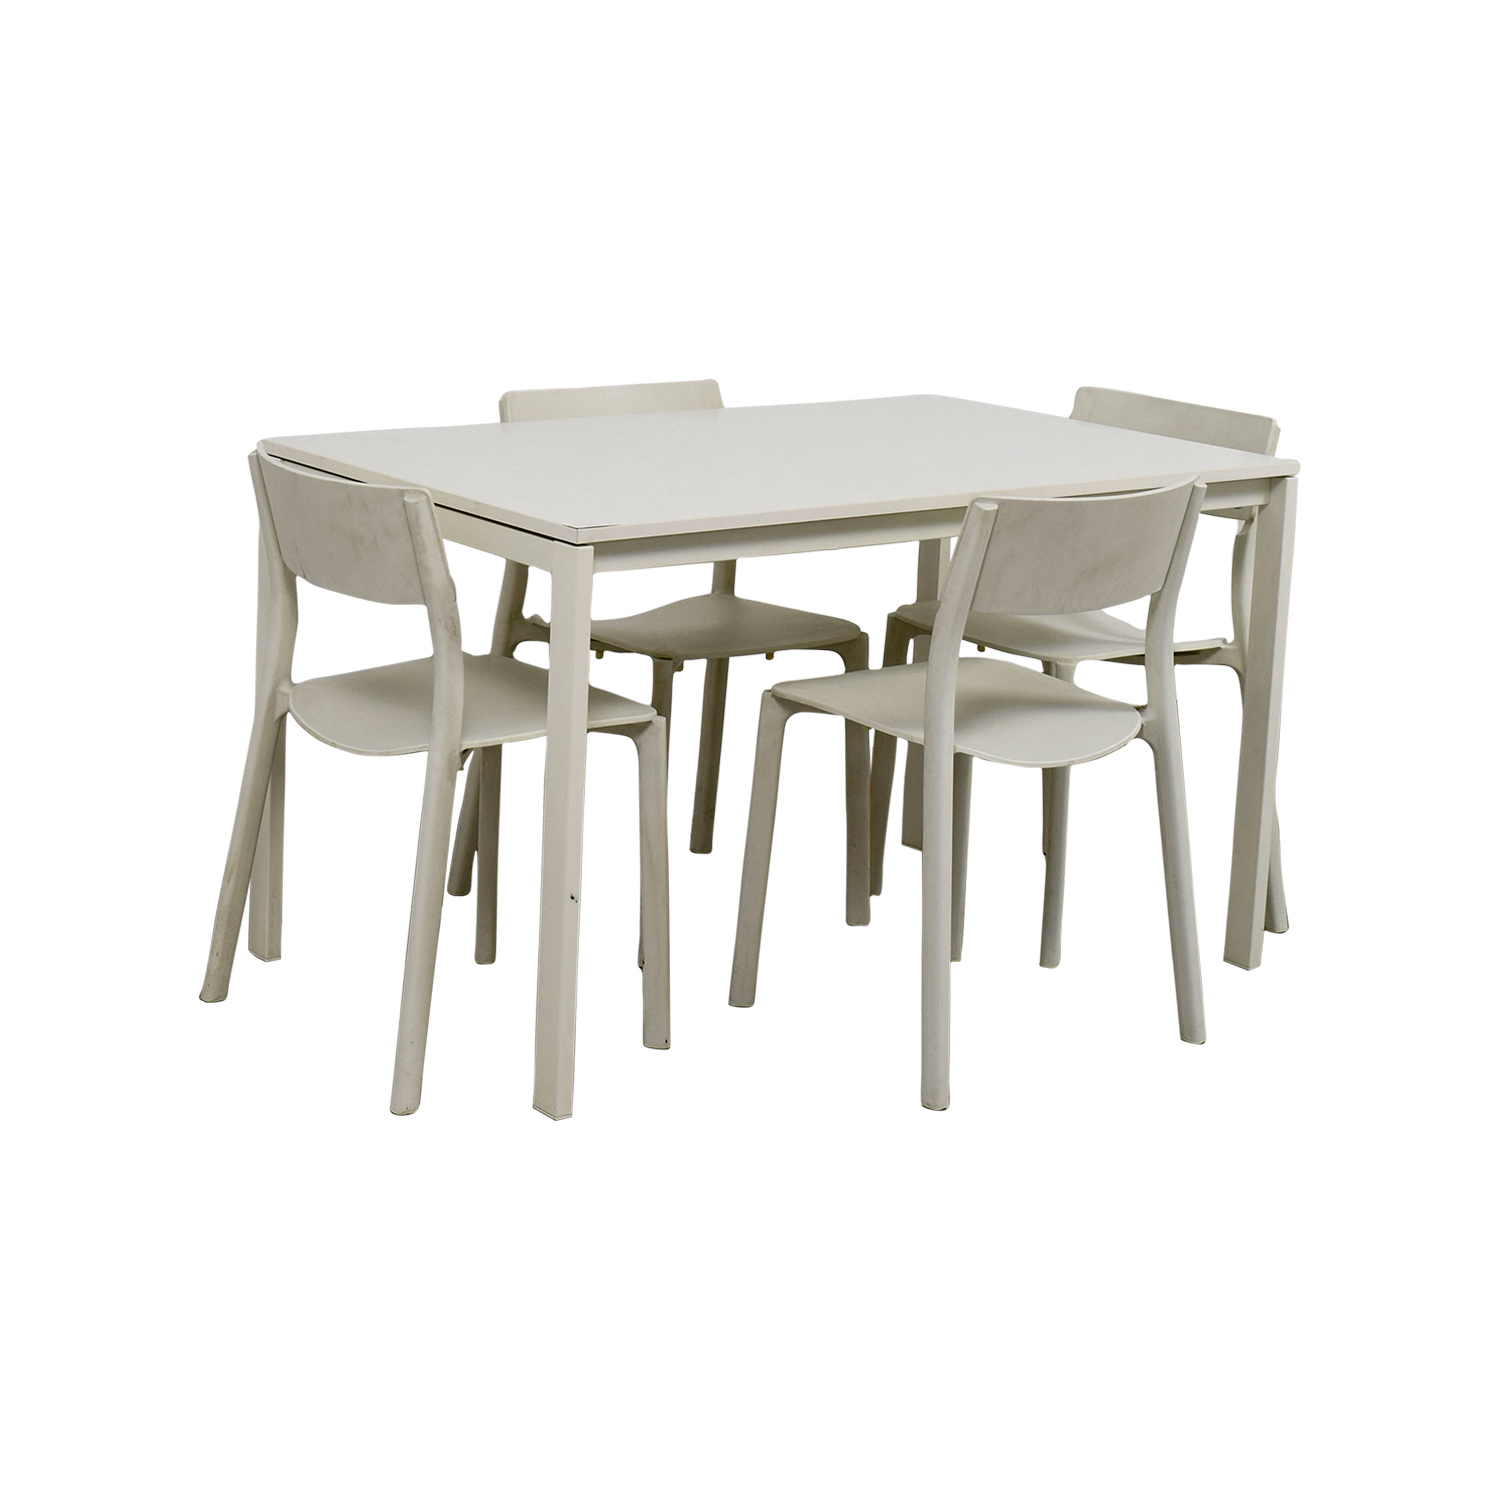 65 off ikea ikea white kitchen table and chairs tables for White kitchen dining chairs